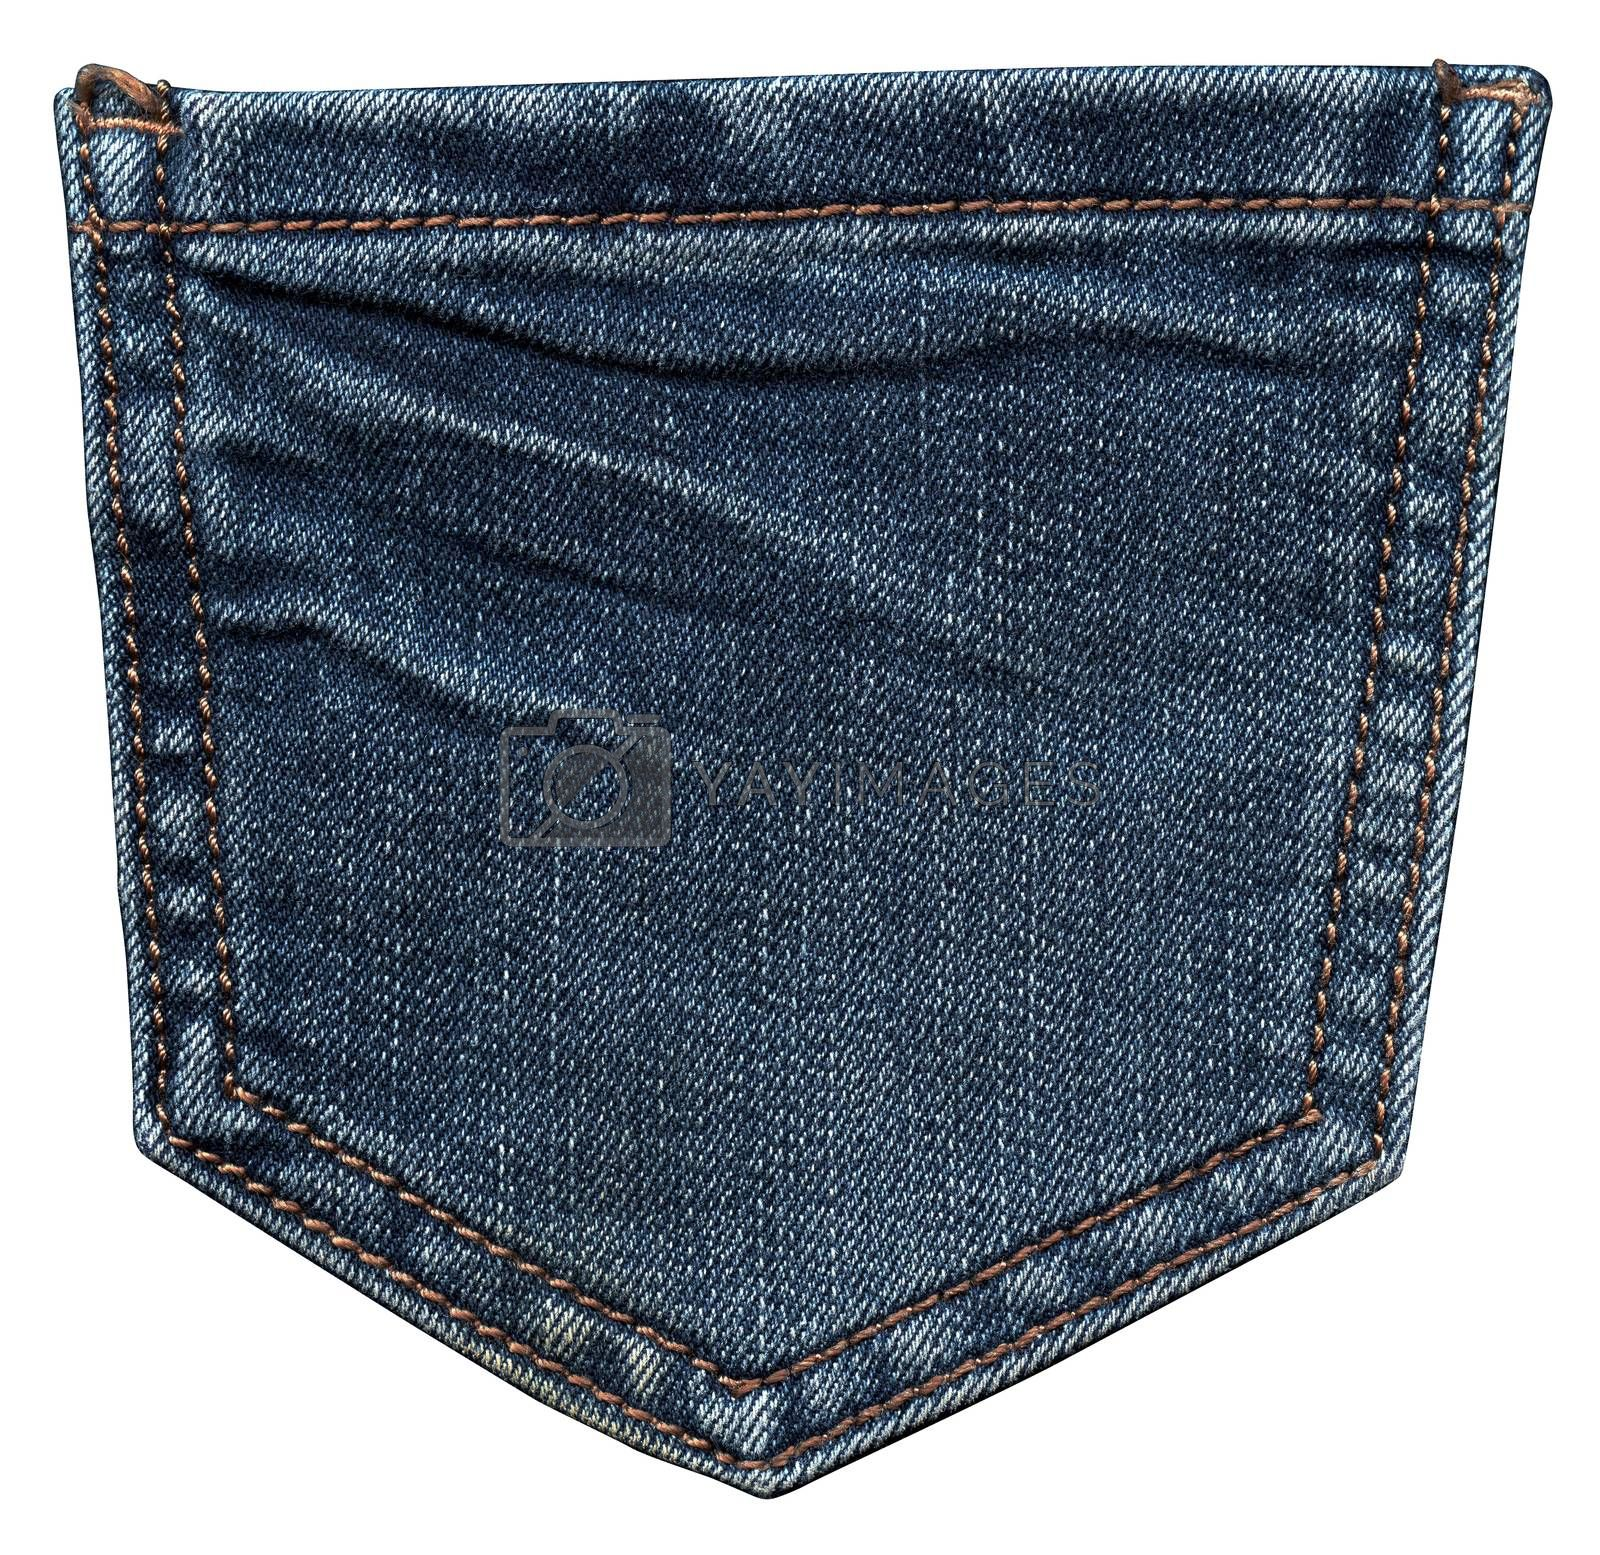 Back jeans pocket by ESSL